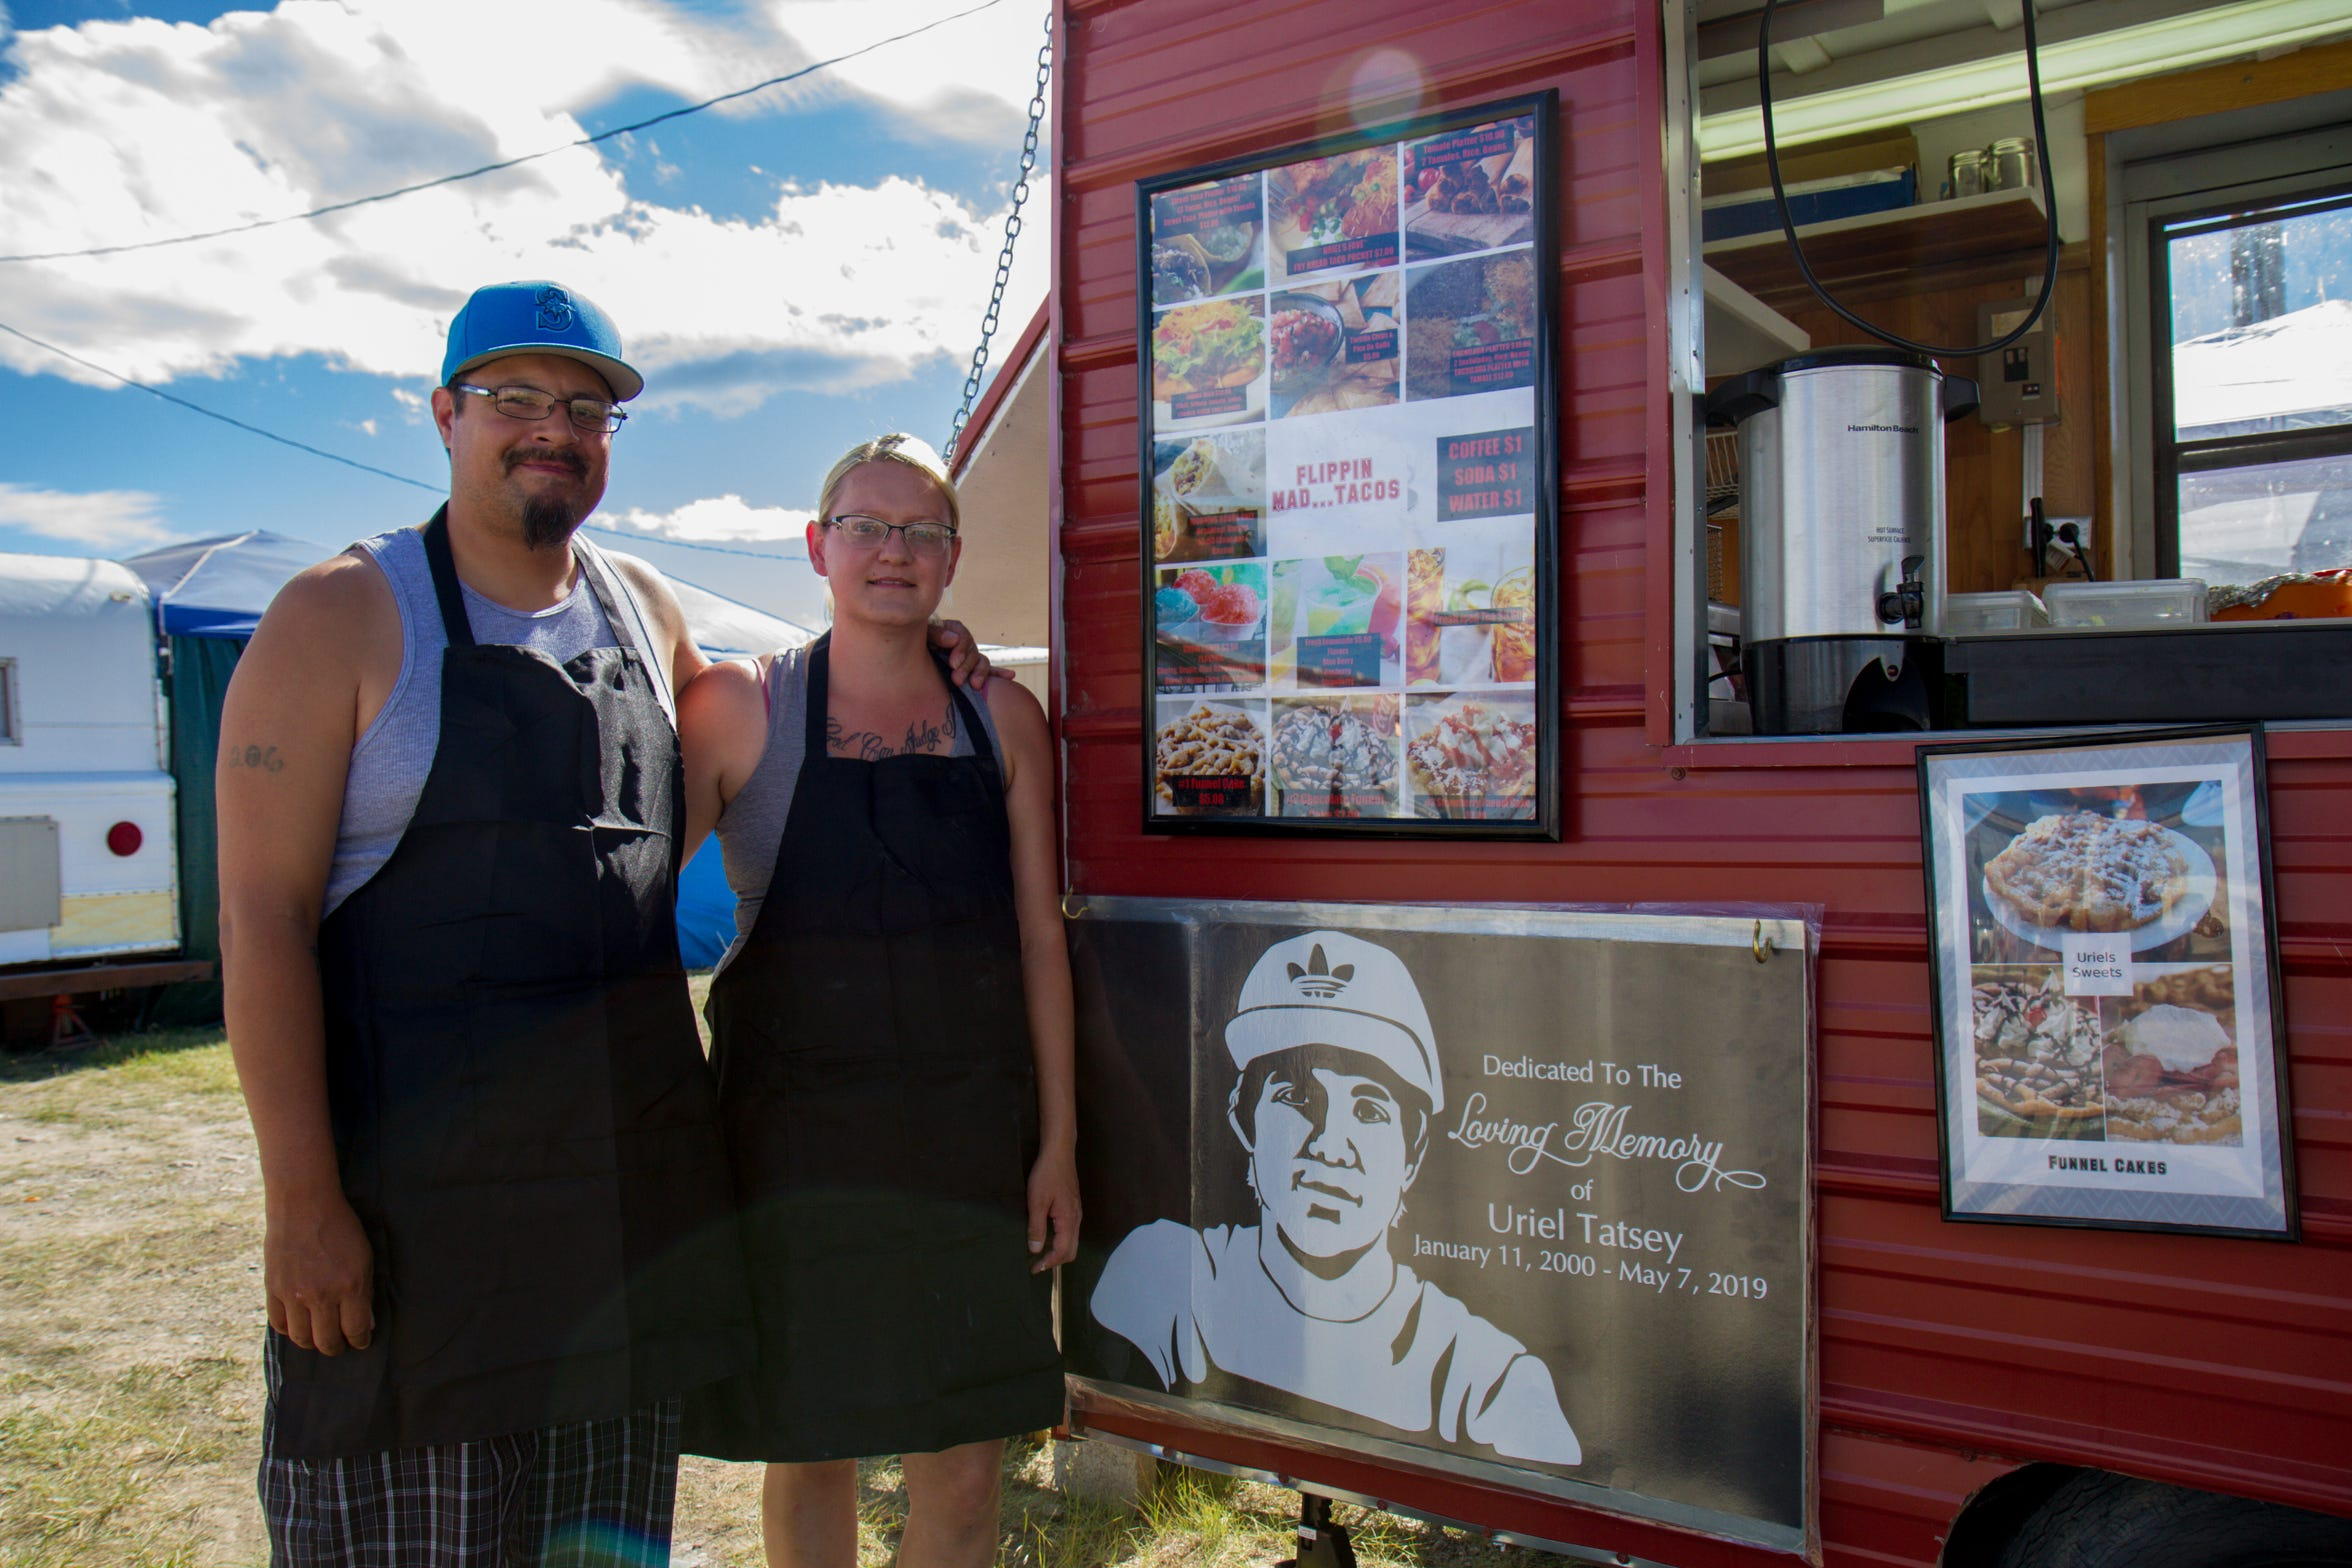 Casey and Jennifer Ehlers renovated and opened their food camper in memory of their nephew, Uriel Tatsey